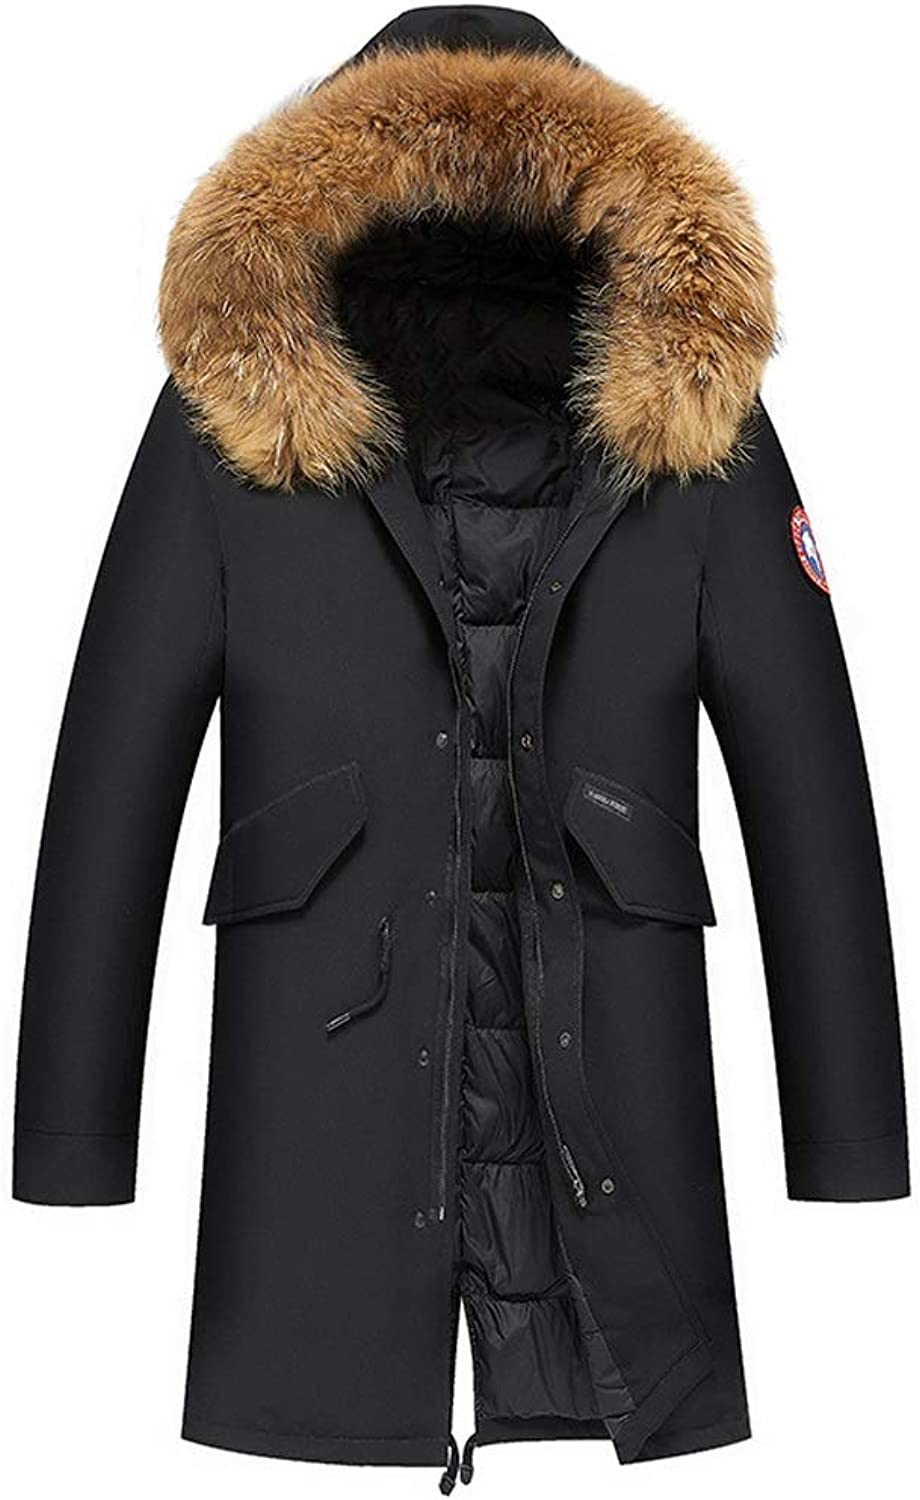 New Down Jacket, Men's Trend Long Hooded Jacket with Large Fur Collar, Winter Outdoor Cold Warm Clothing,Black (Size   XL)